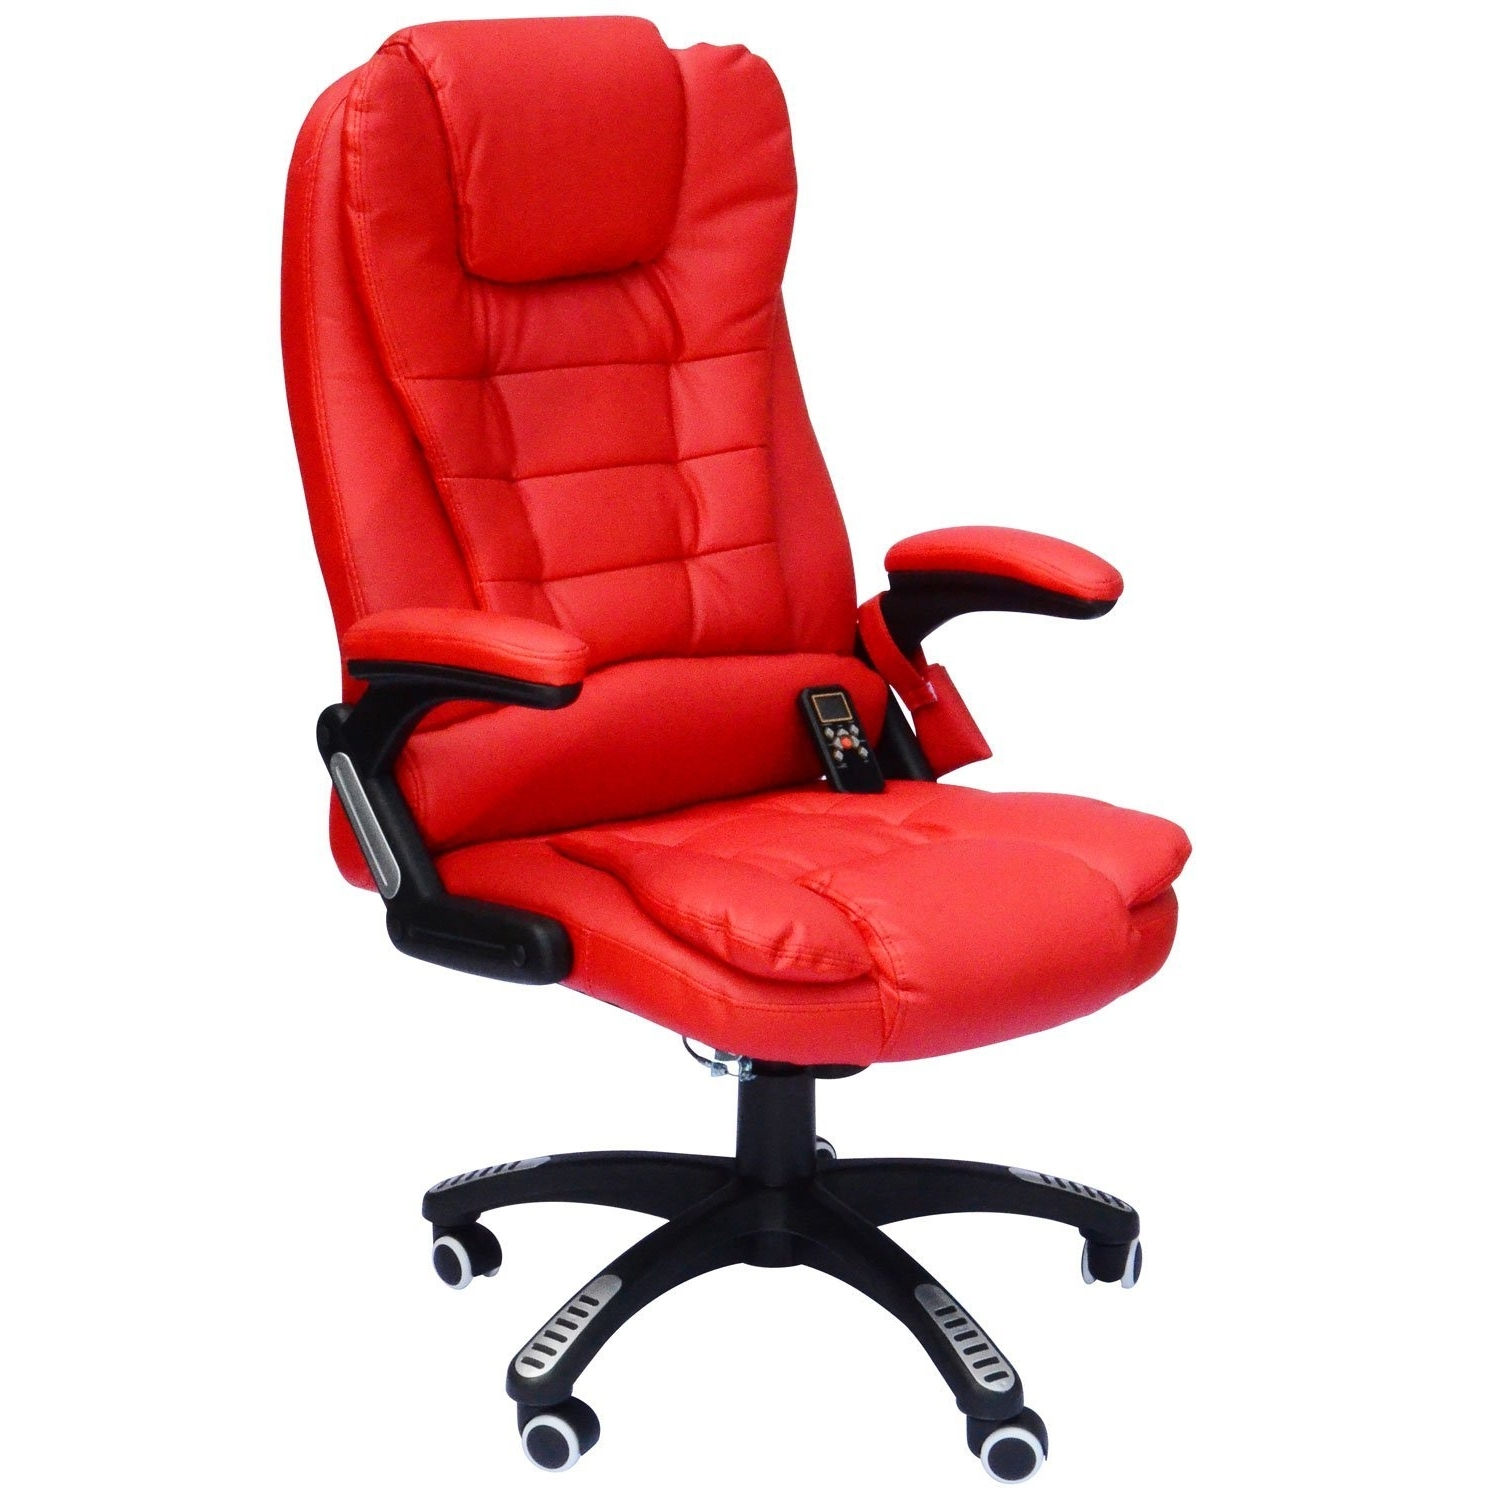 Executive Office Side Chairs For Well Known Furniture : Office Side Chairs Office Chair Replacement Parts (View 14 of 20)